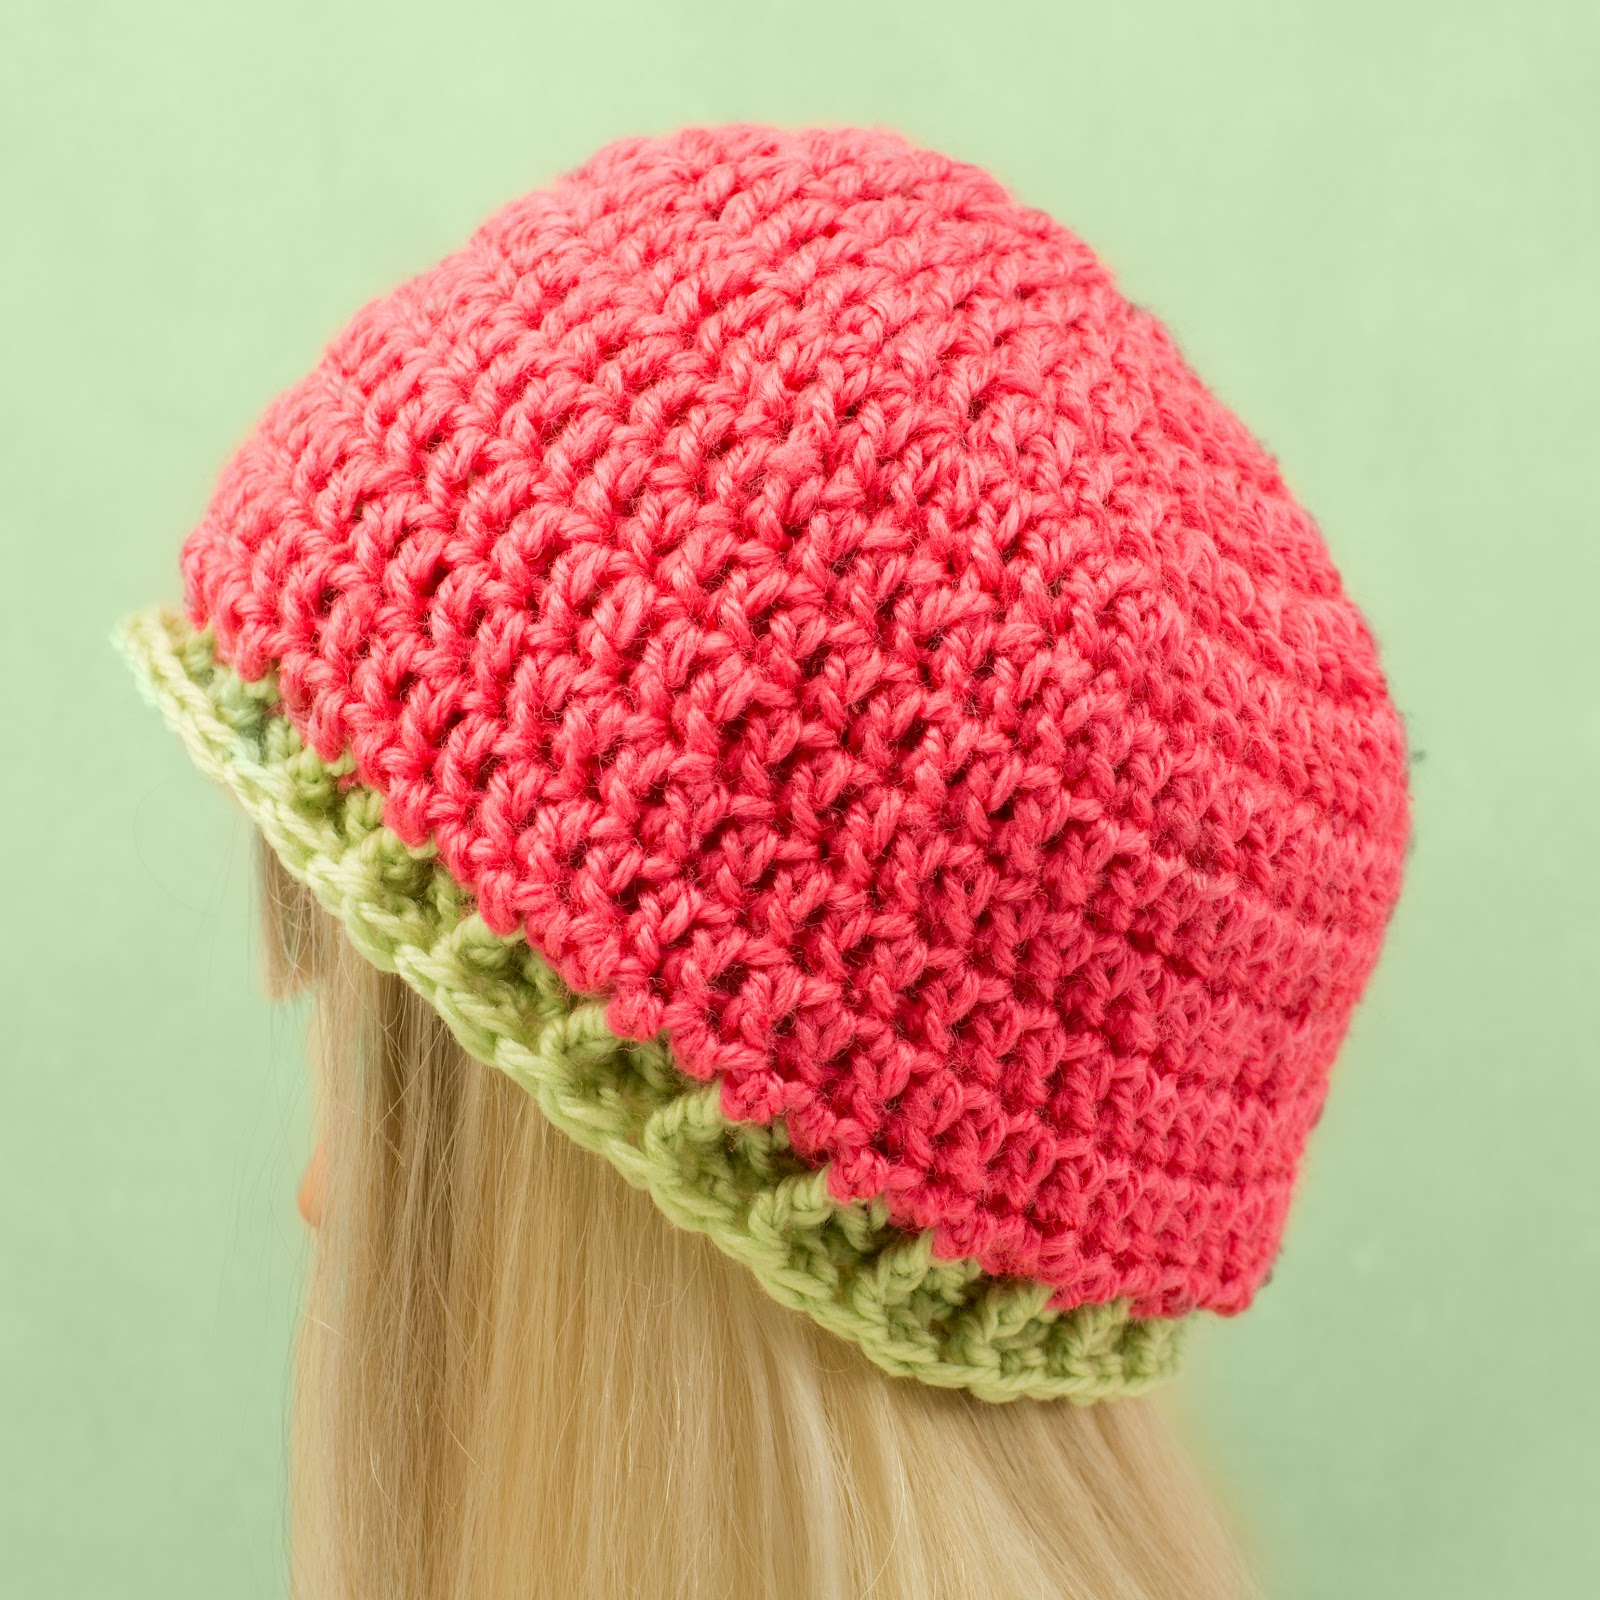 Crochet Basic Beanie Hat Pattern : Hopeful Honey Craft, Crochet, Create: Apples & Boxes ~ 6 ...